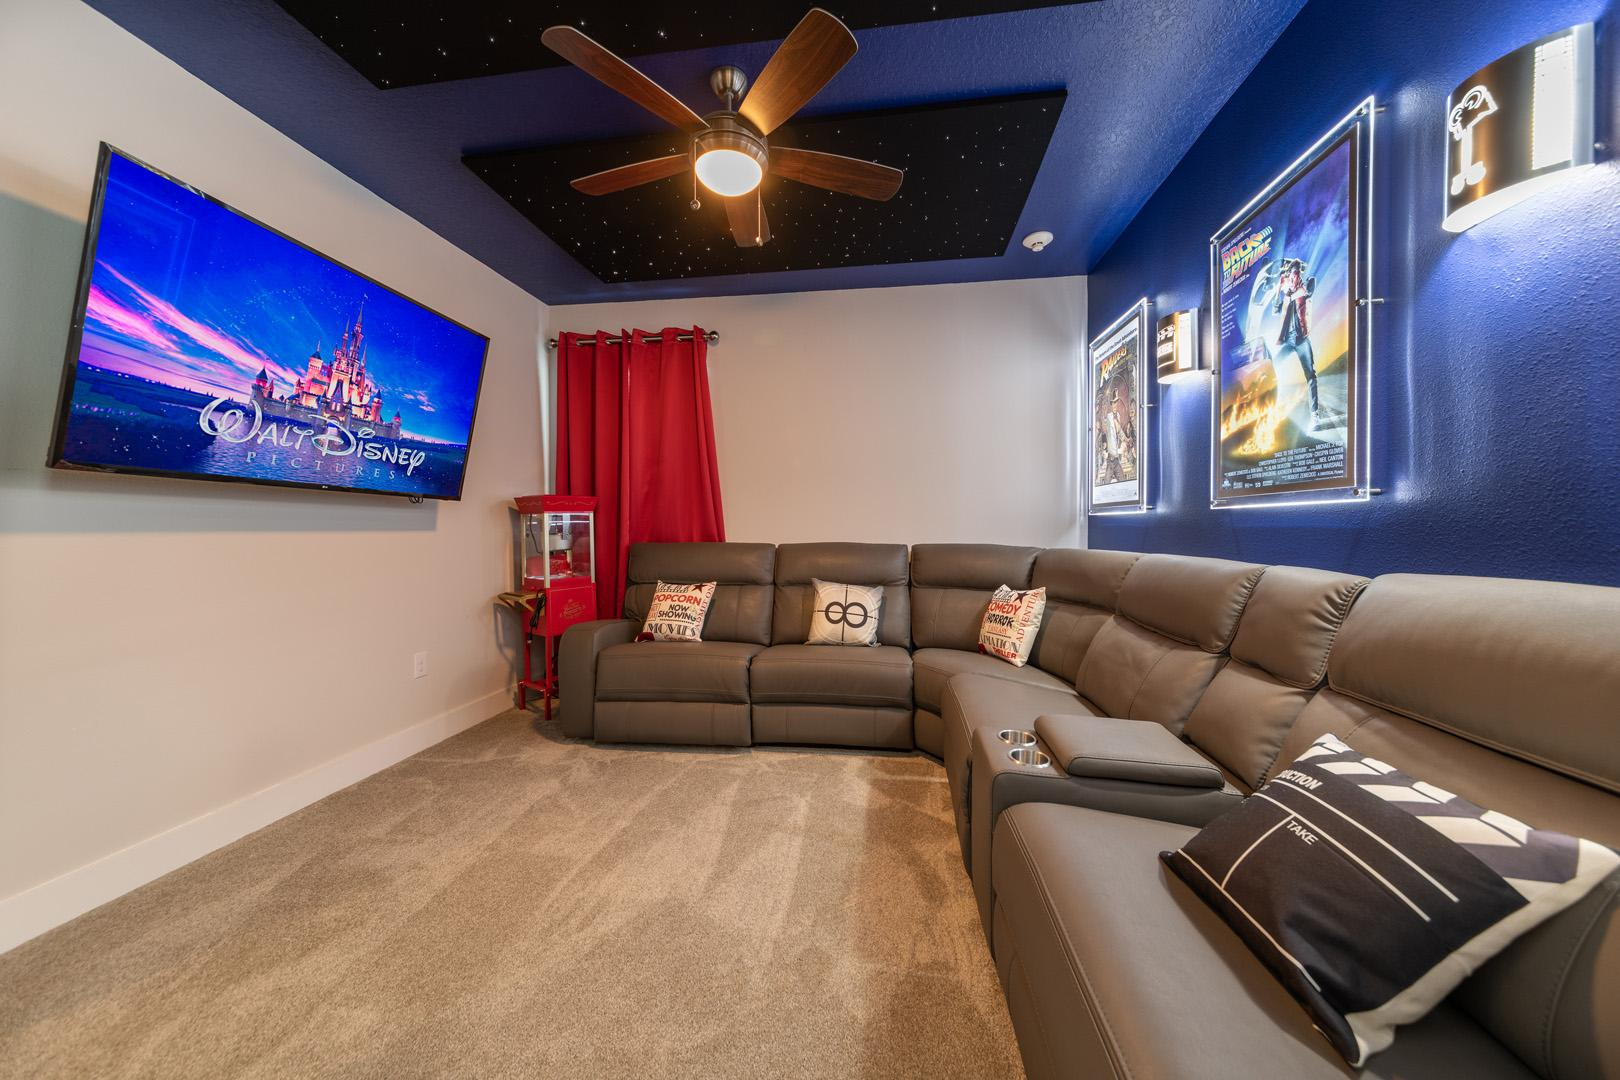 Property Image 1 - Upscale Home near Disney with Pool Table & Media Room